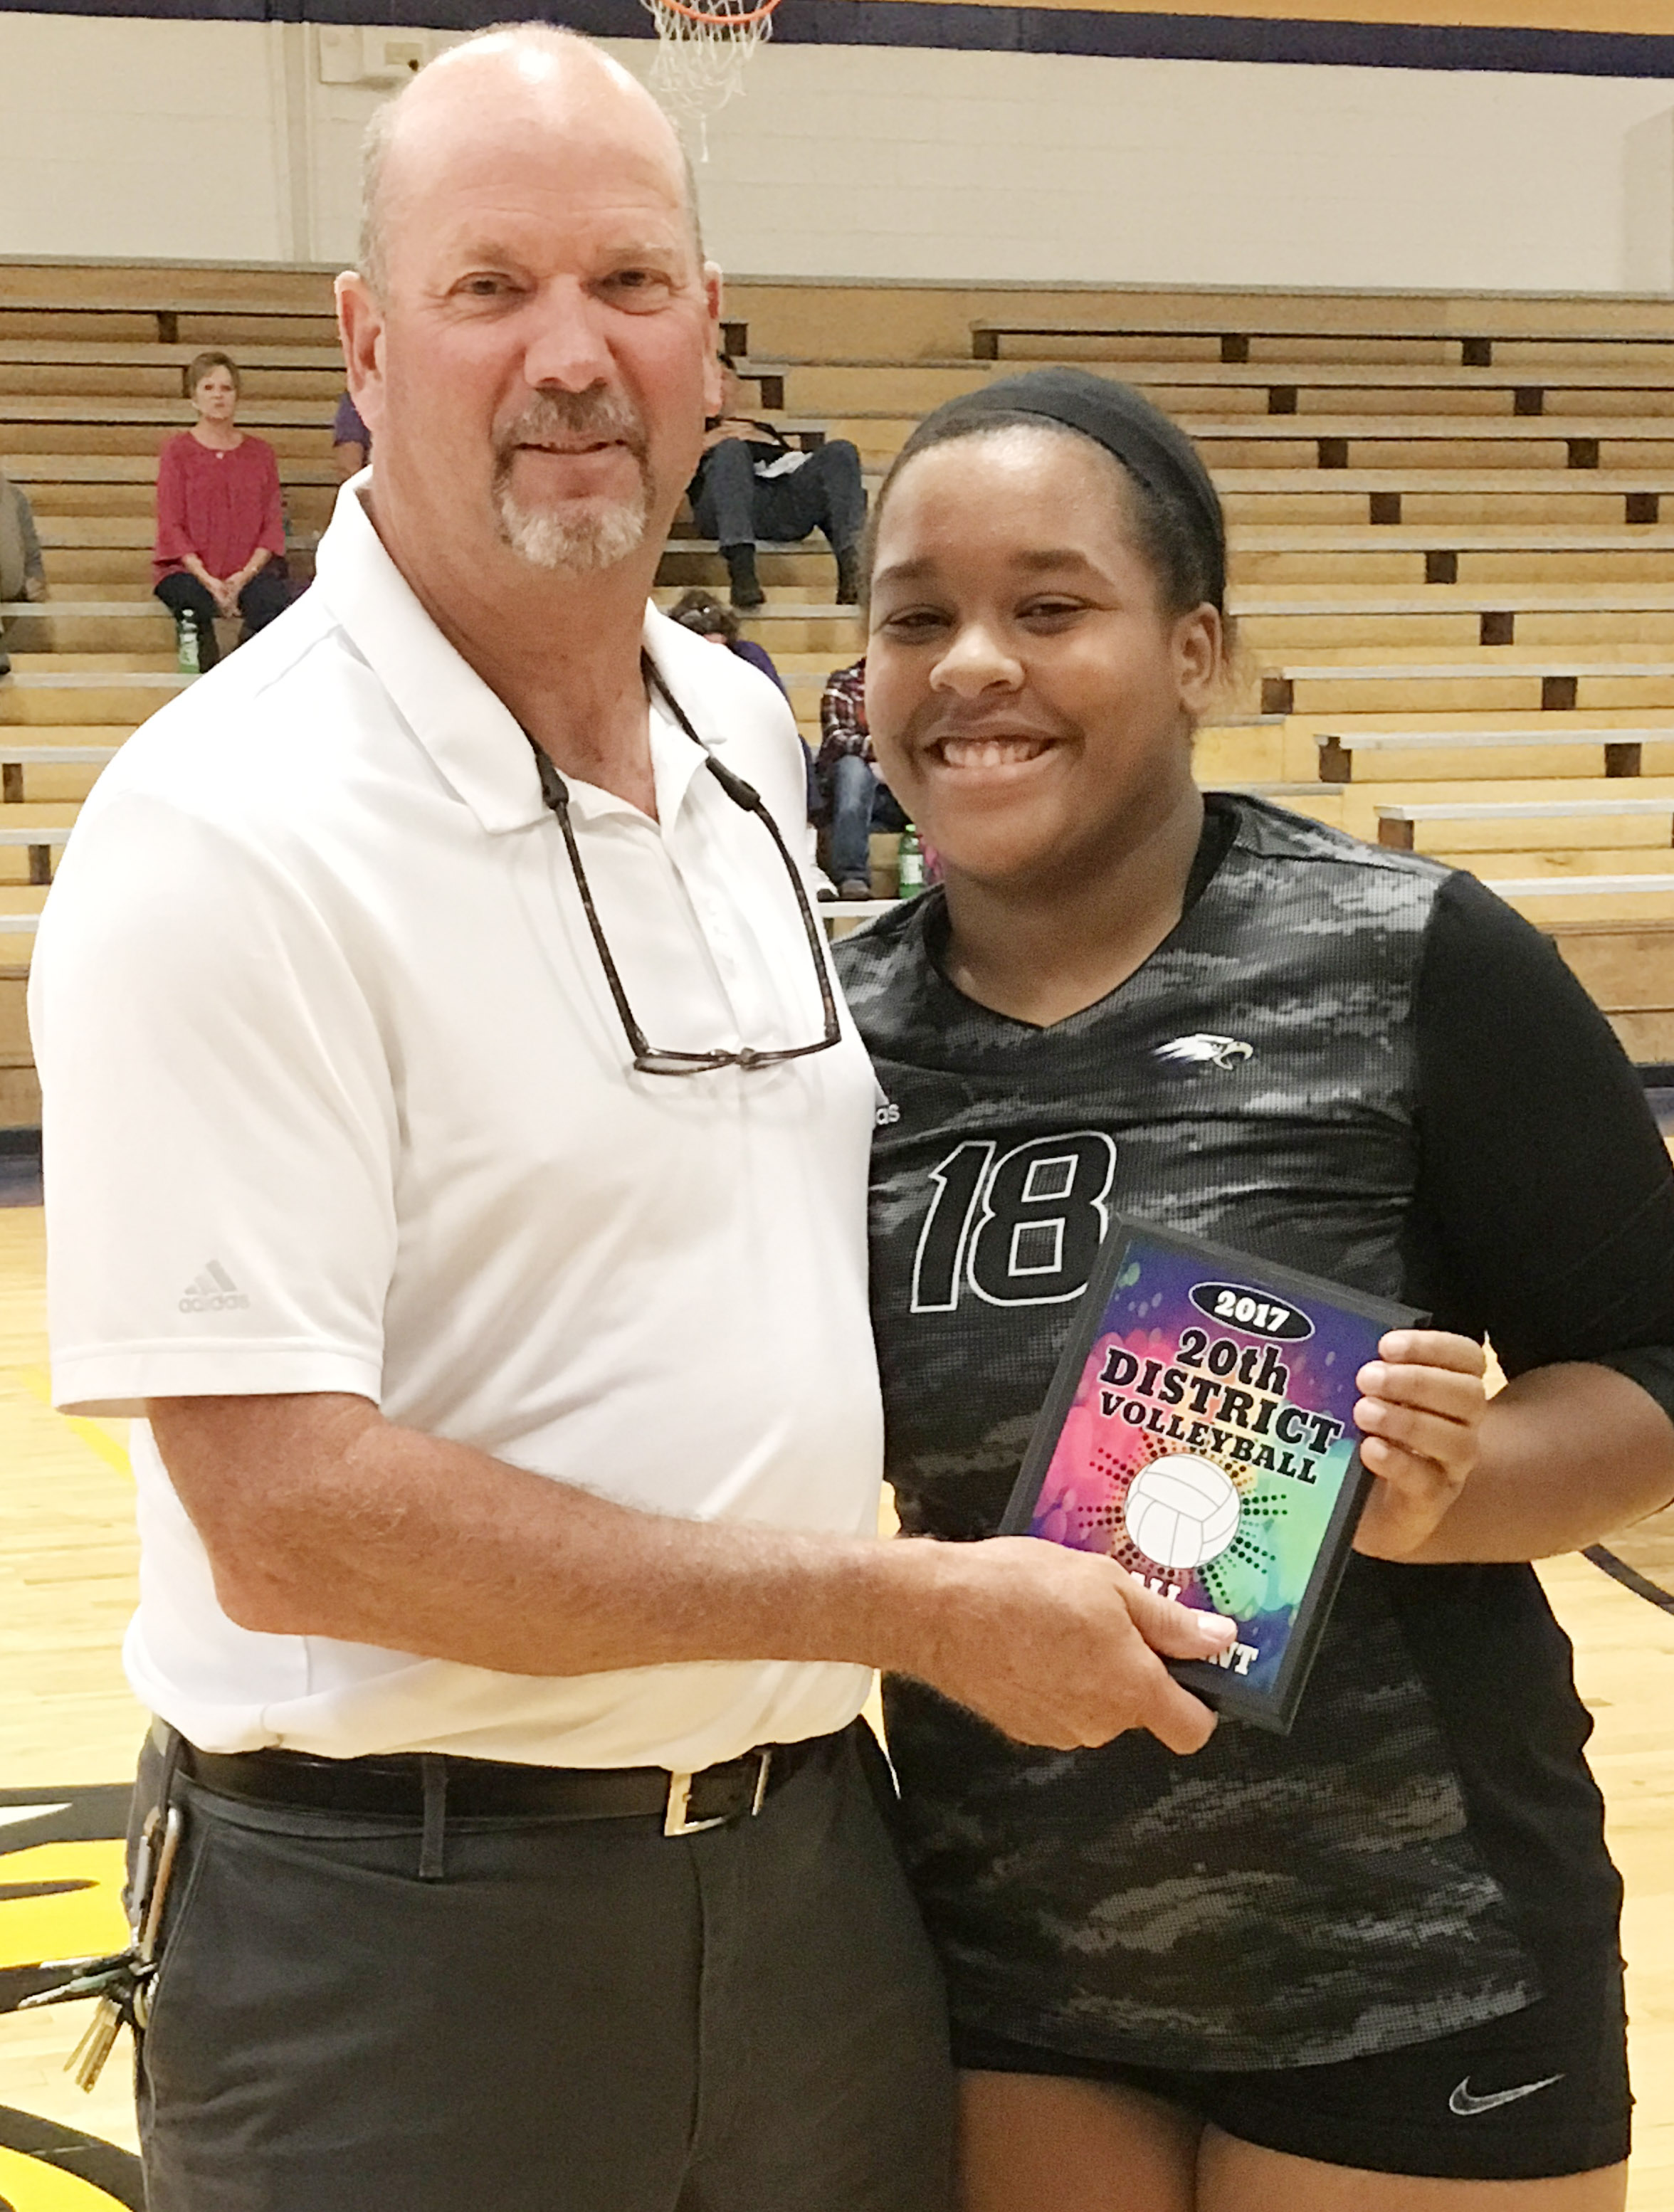 CHS senior Kayla Young is named to the all-tournament team. At left is CHS Athletic Director Tim Davis.